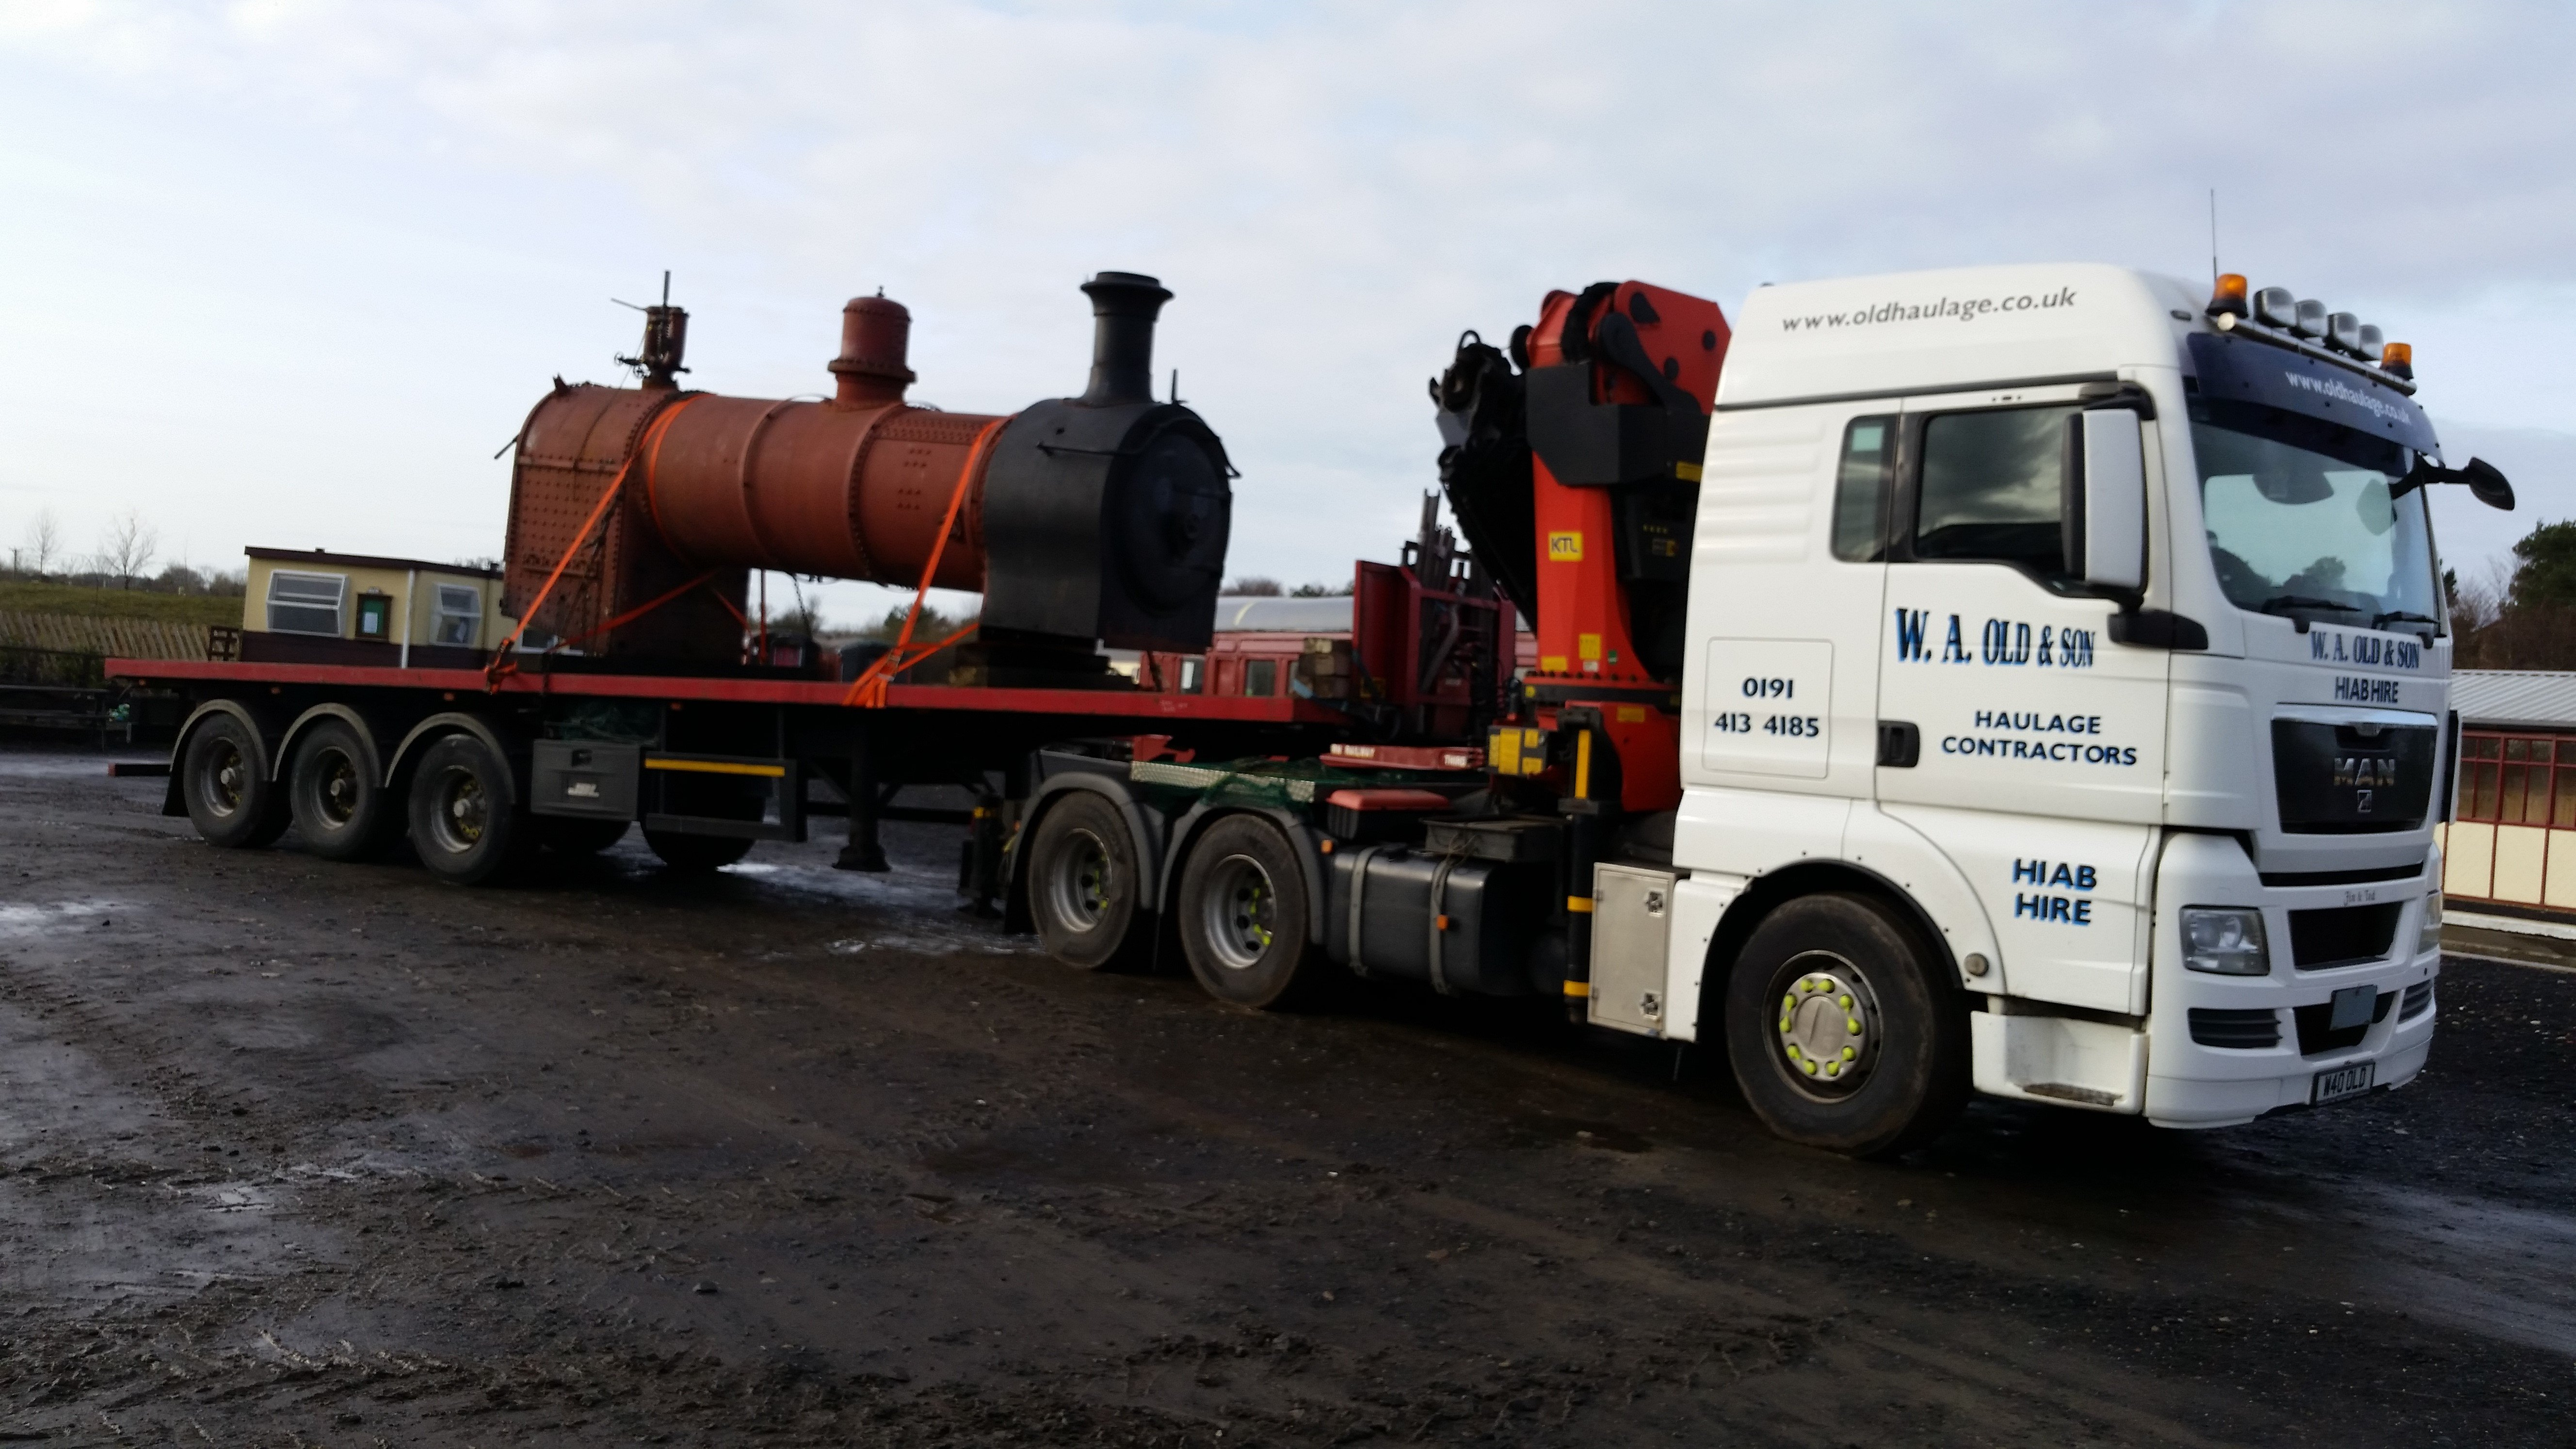 railway coach being transported